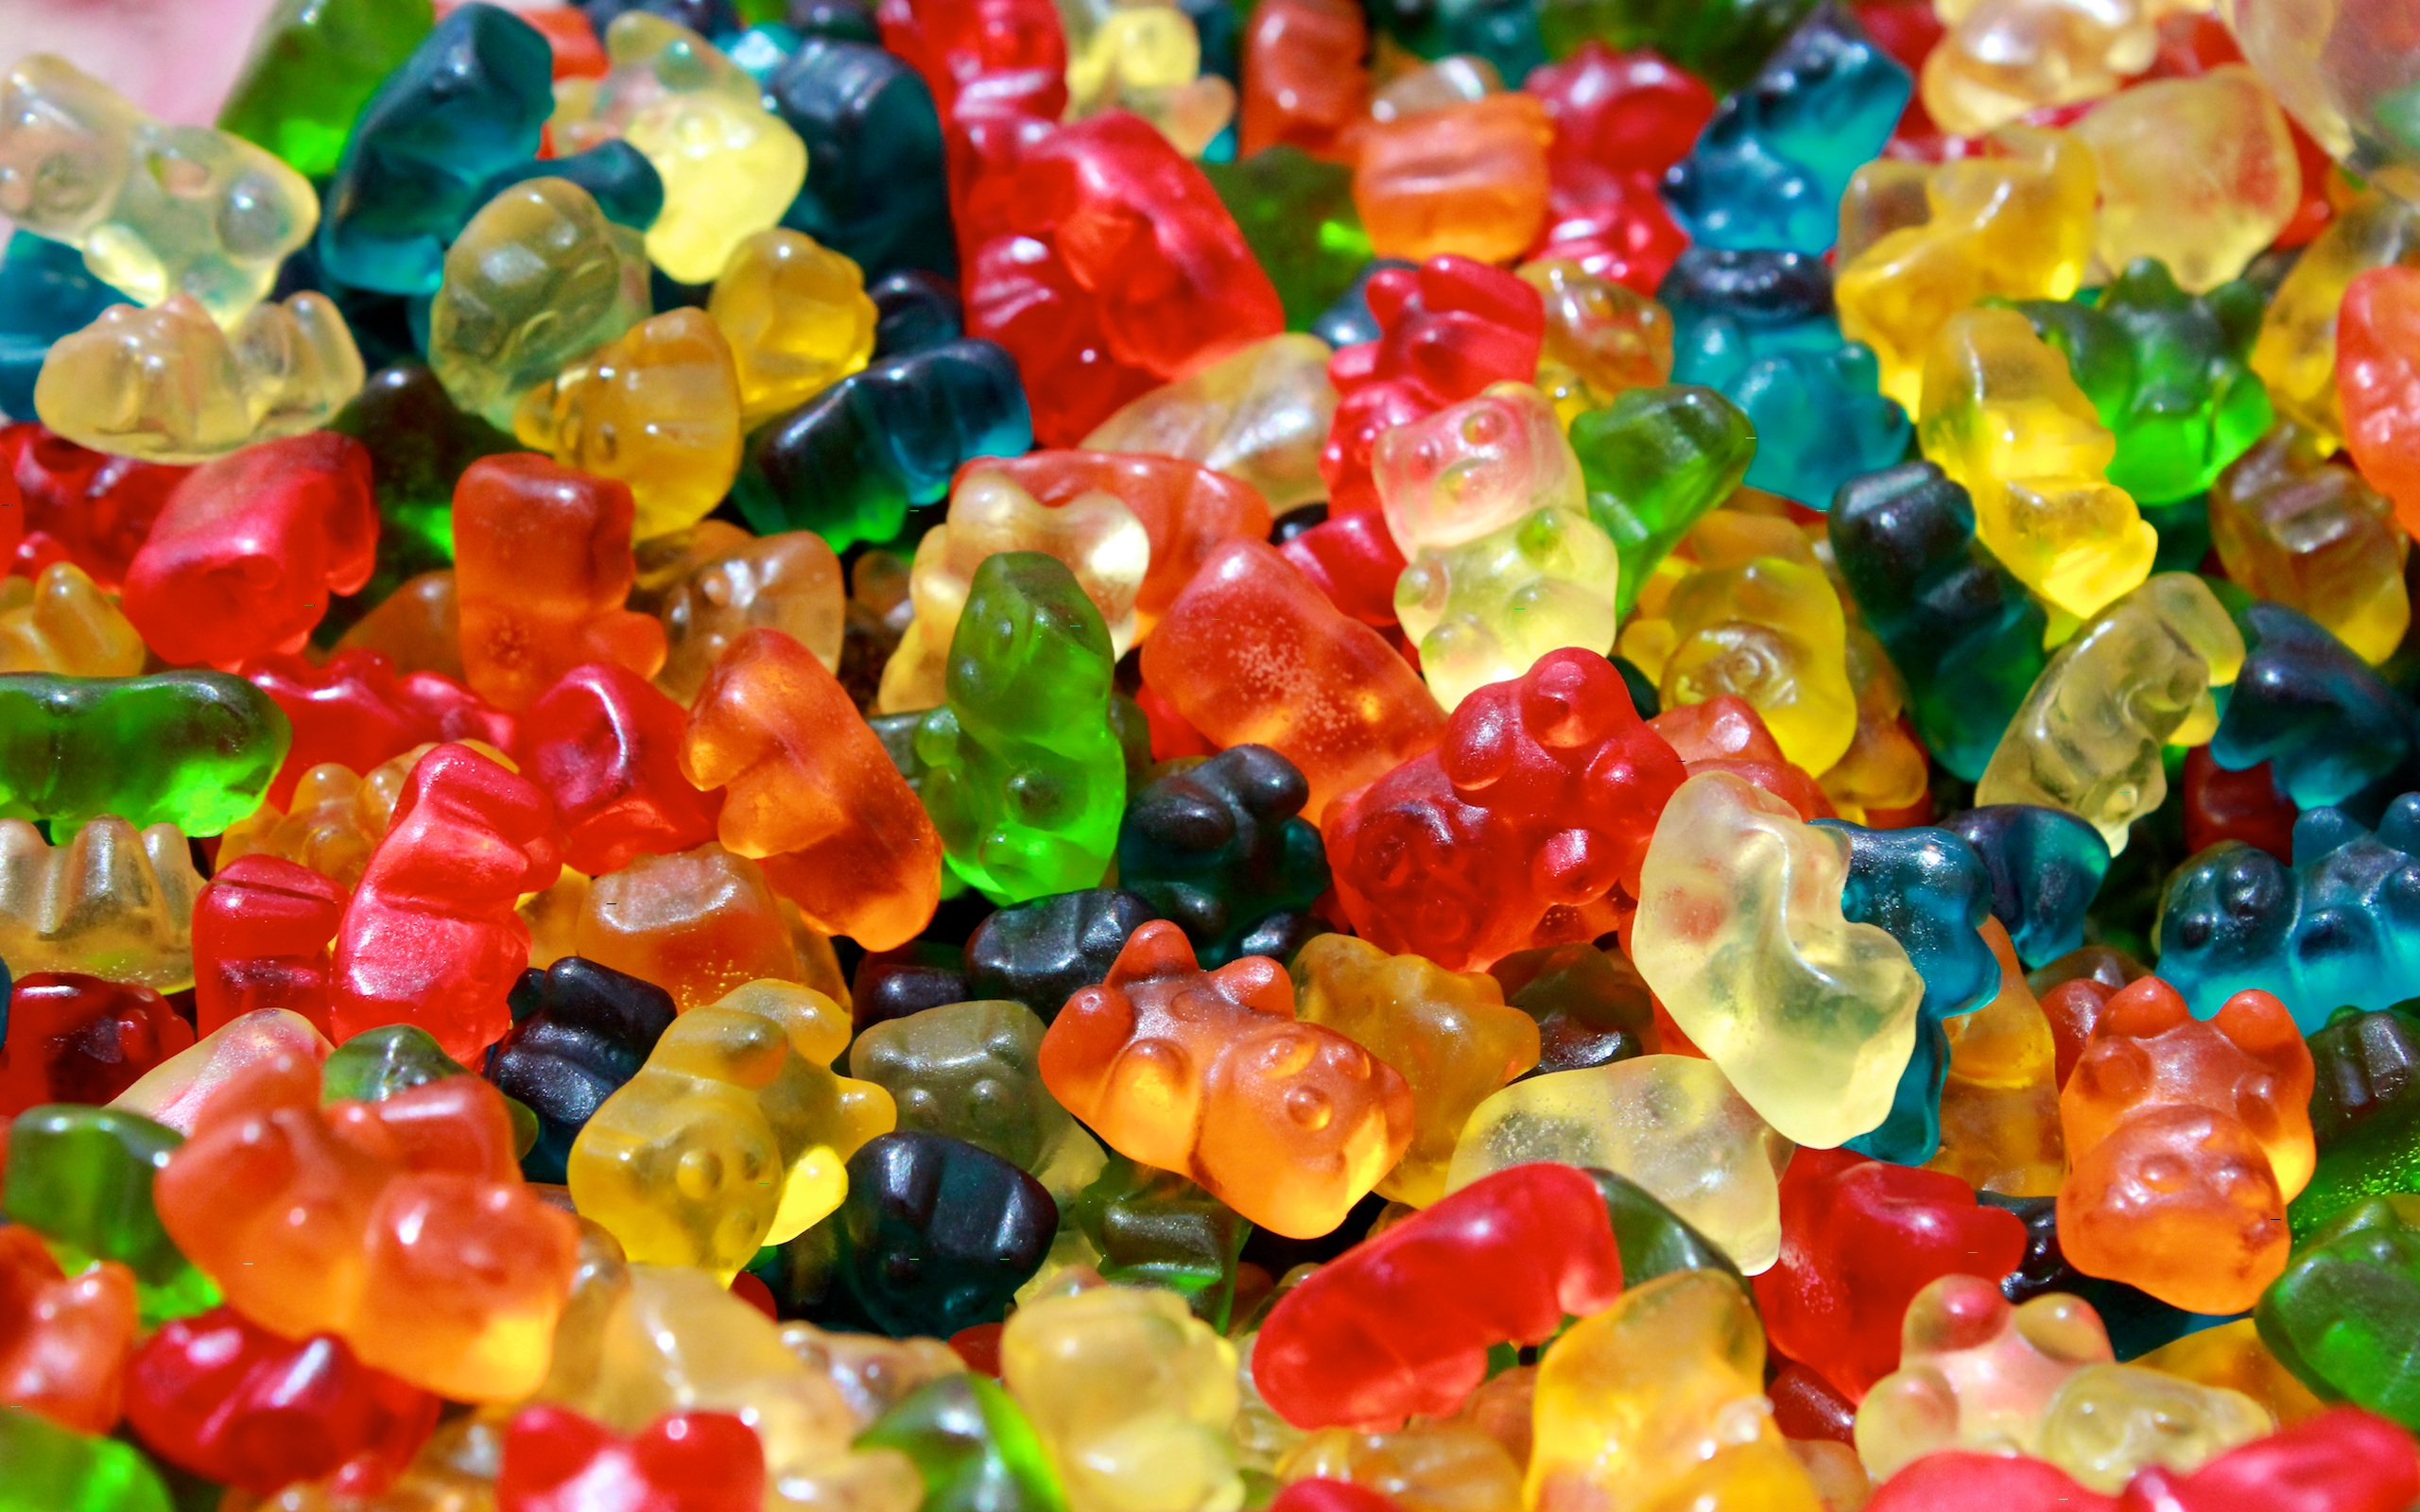 Gummy Bear Wallpaper 2560x1600 78609